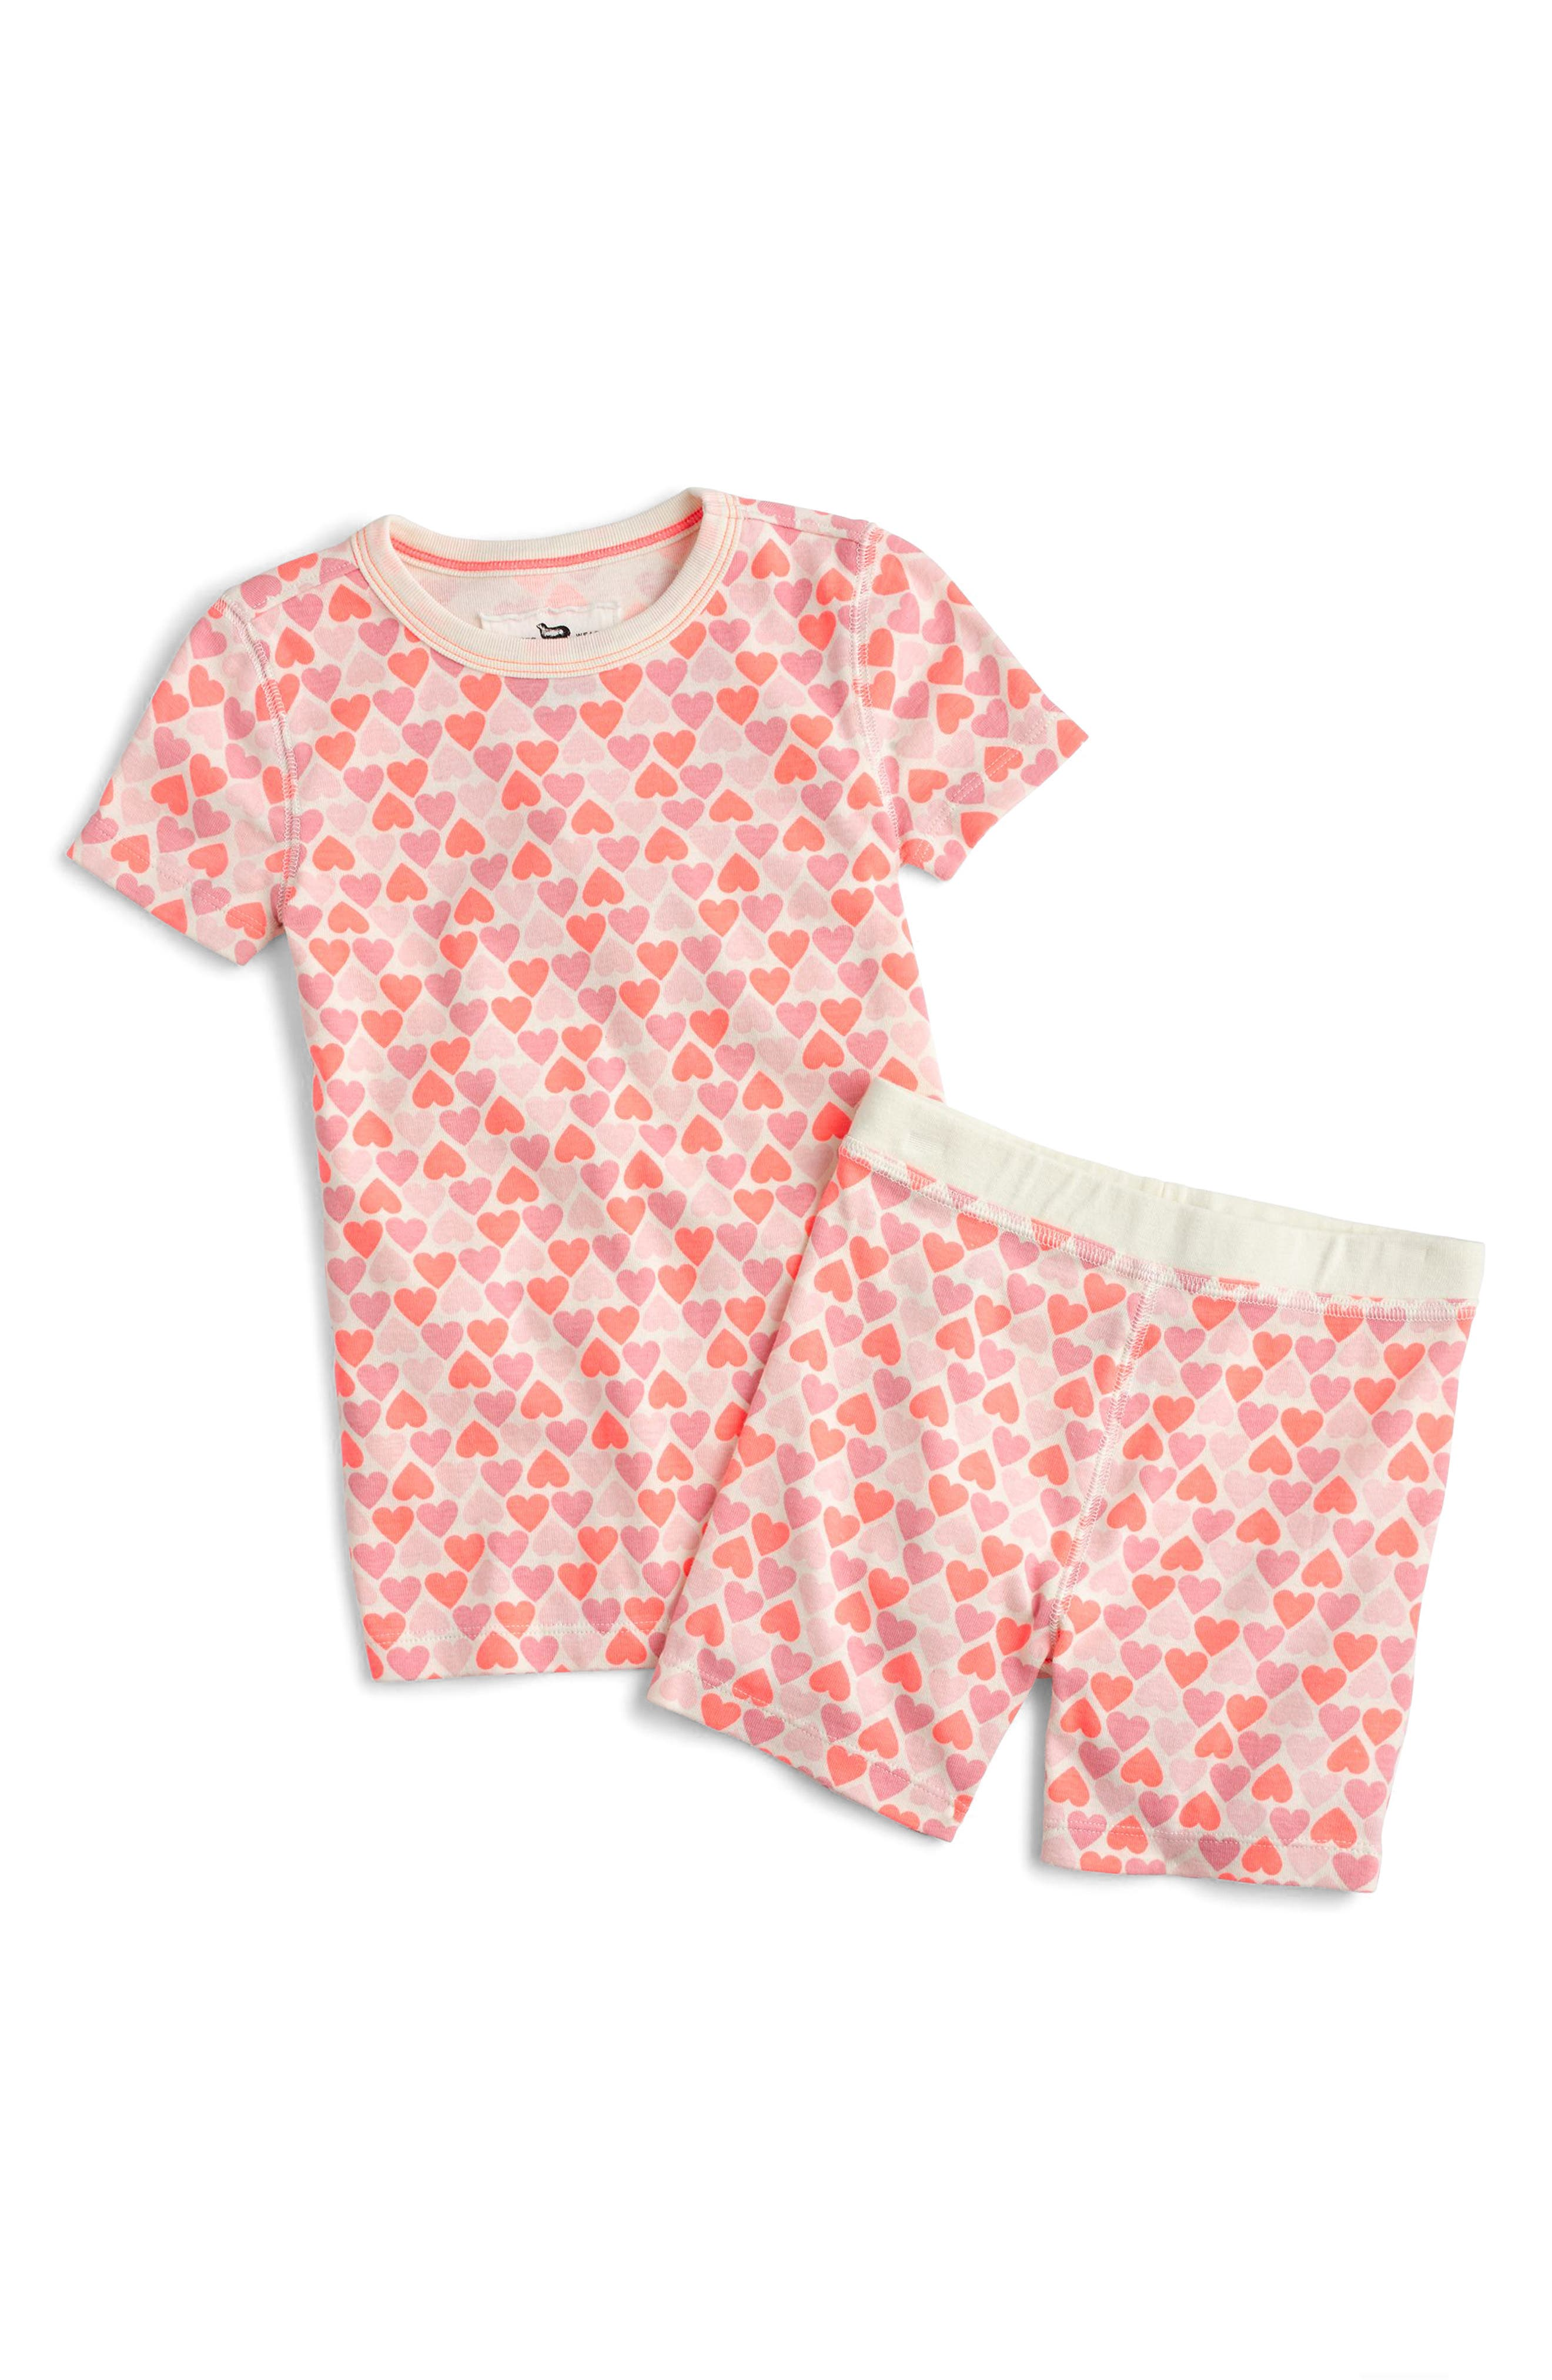 Stacked Hearts Fitted Two-Piece Pajamas,                             Main thumbnail 1, color,                             Neon Sunrise